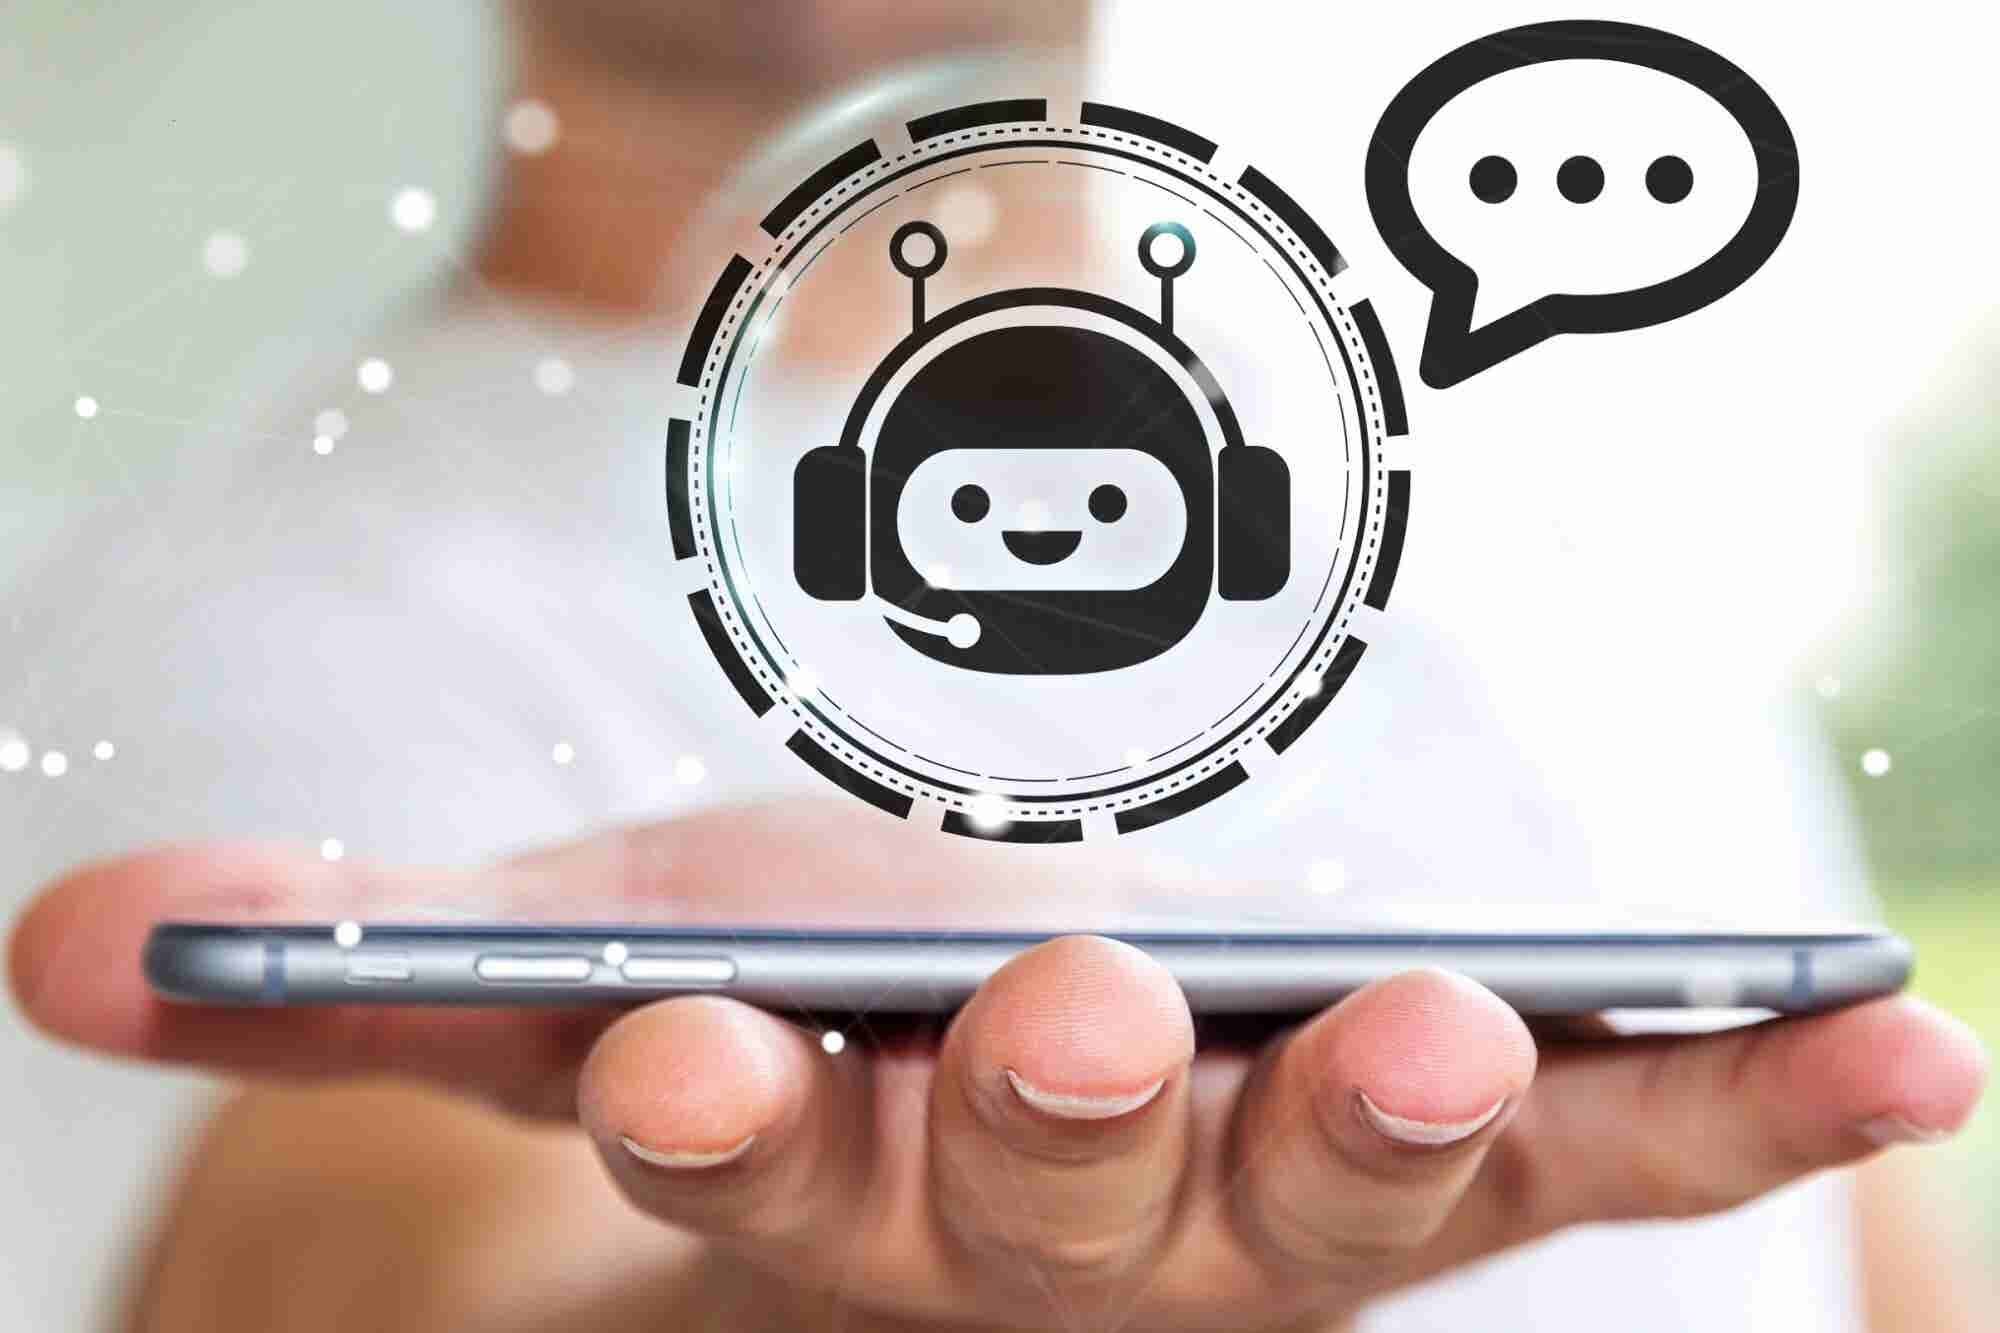 The Rise of Virtual Employee Assistants in the Workplace